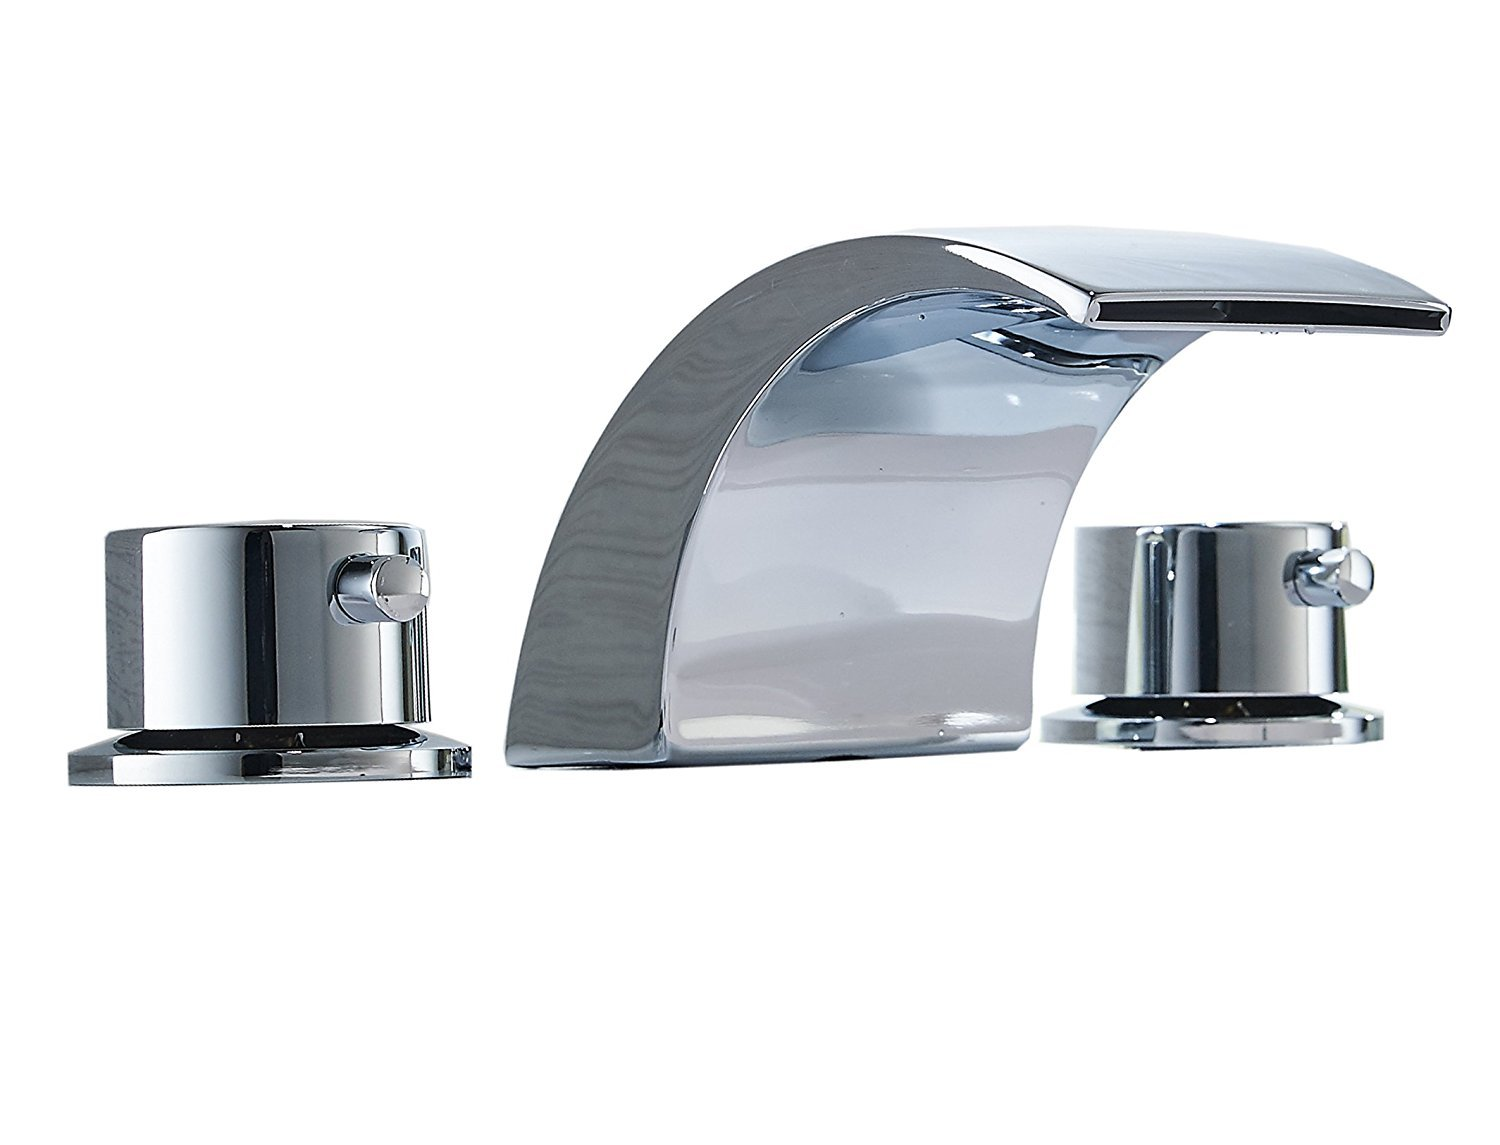 Aquafaucet 8-16 Inch Waterfall Widespread Bathroom Sink Faucet 2 Handles 3 Holes Chrome No Led Light